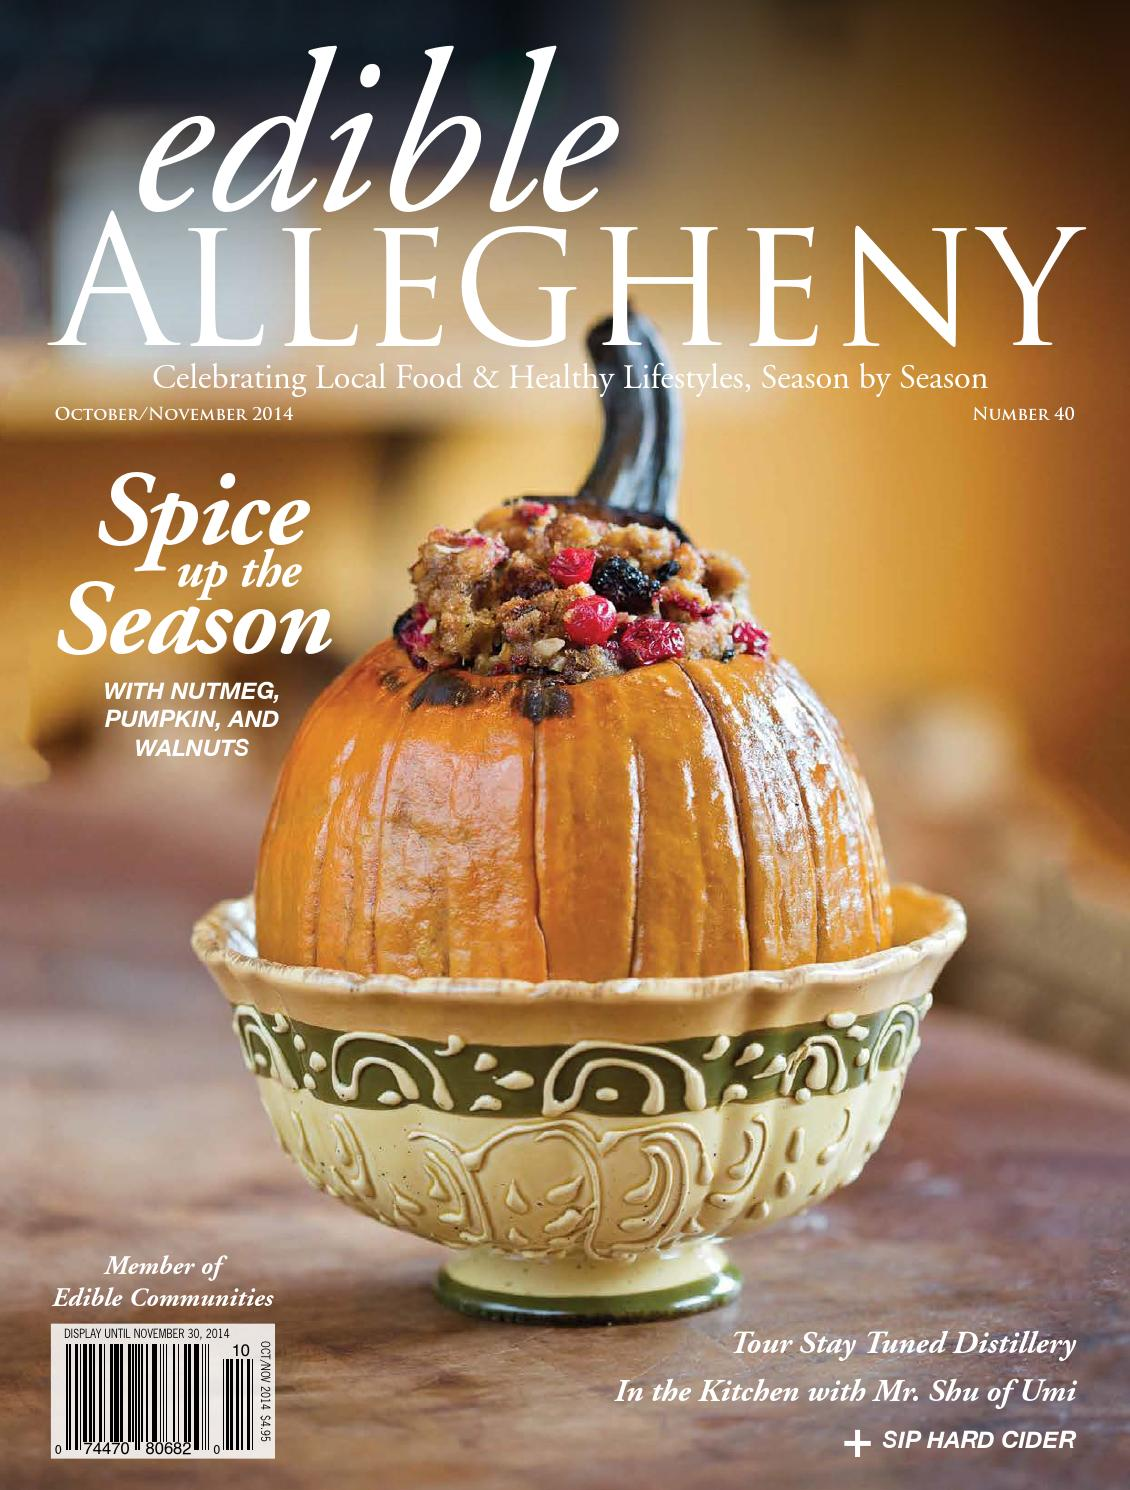 Cucina Alessi Catering Menu Edible Allegheny October November 2014 By Whirl Publishing Issuu